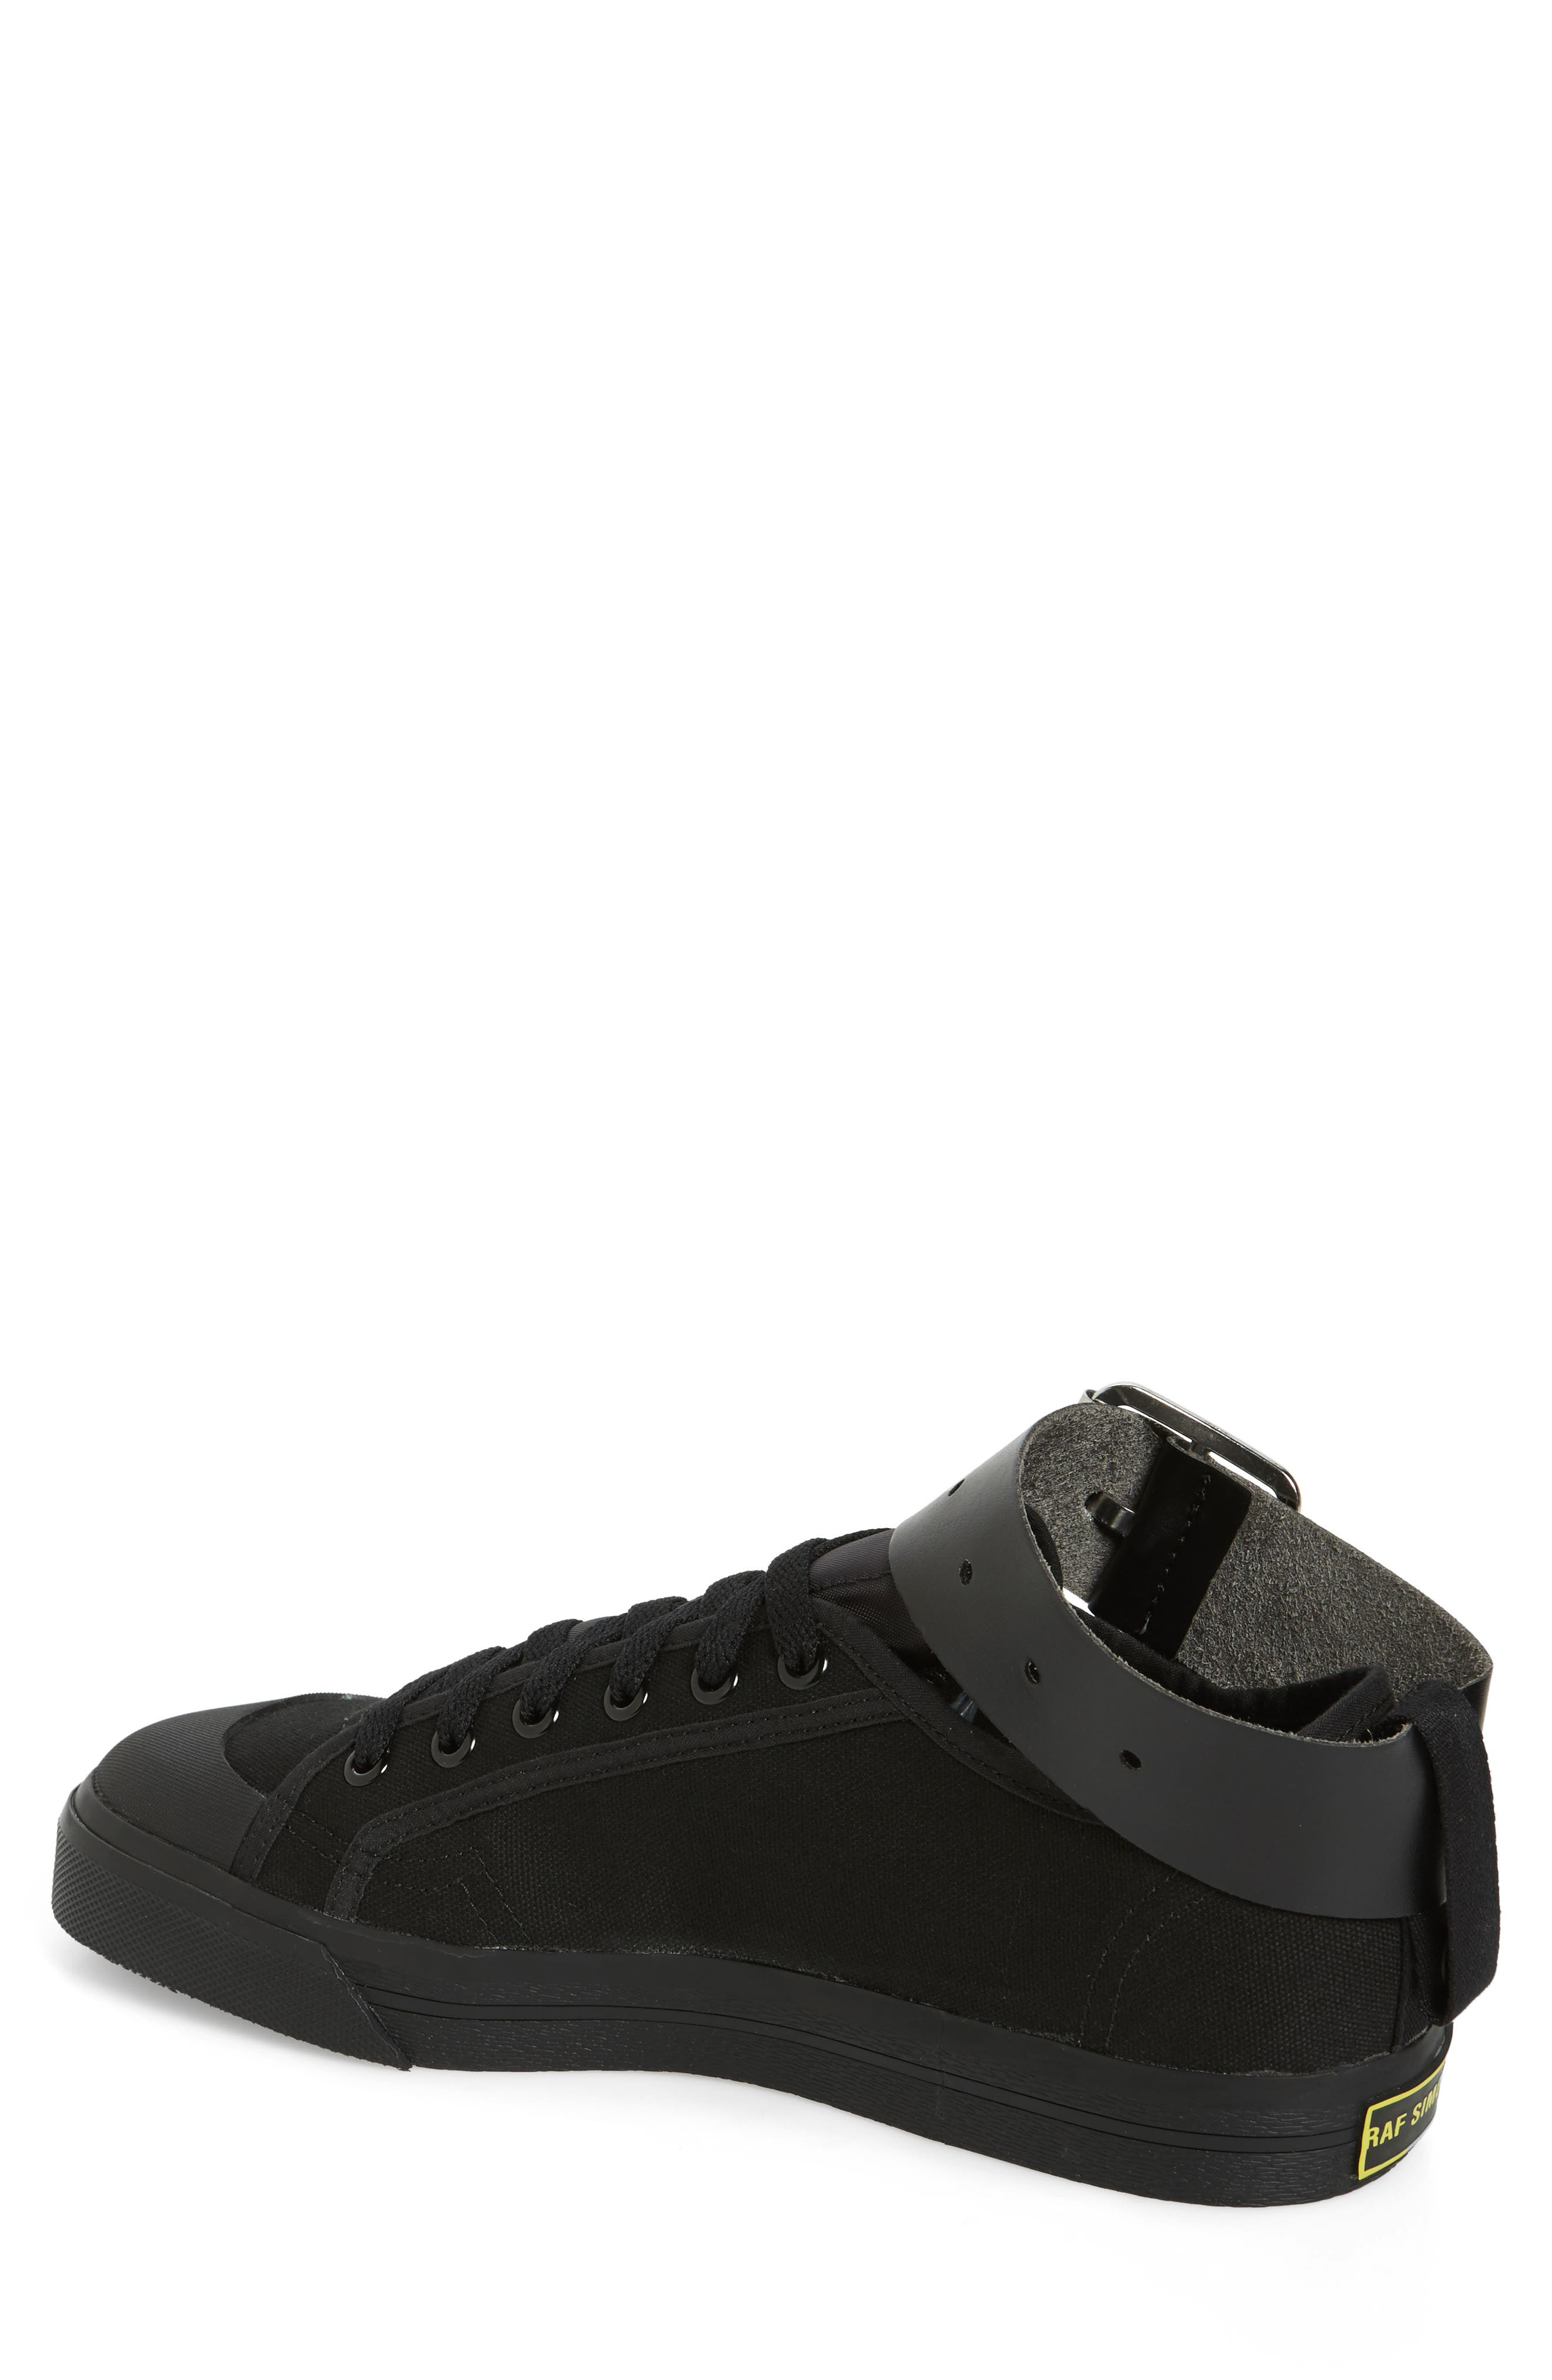 RAF SIMONS,                             adidas by Raf Simons Spirit Ankle Strap Sneaker,                             Alternate thumbnail 2, color,                             001